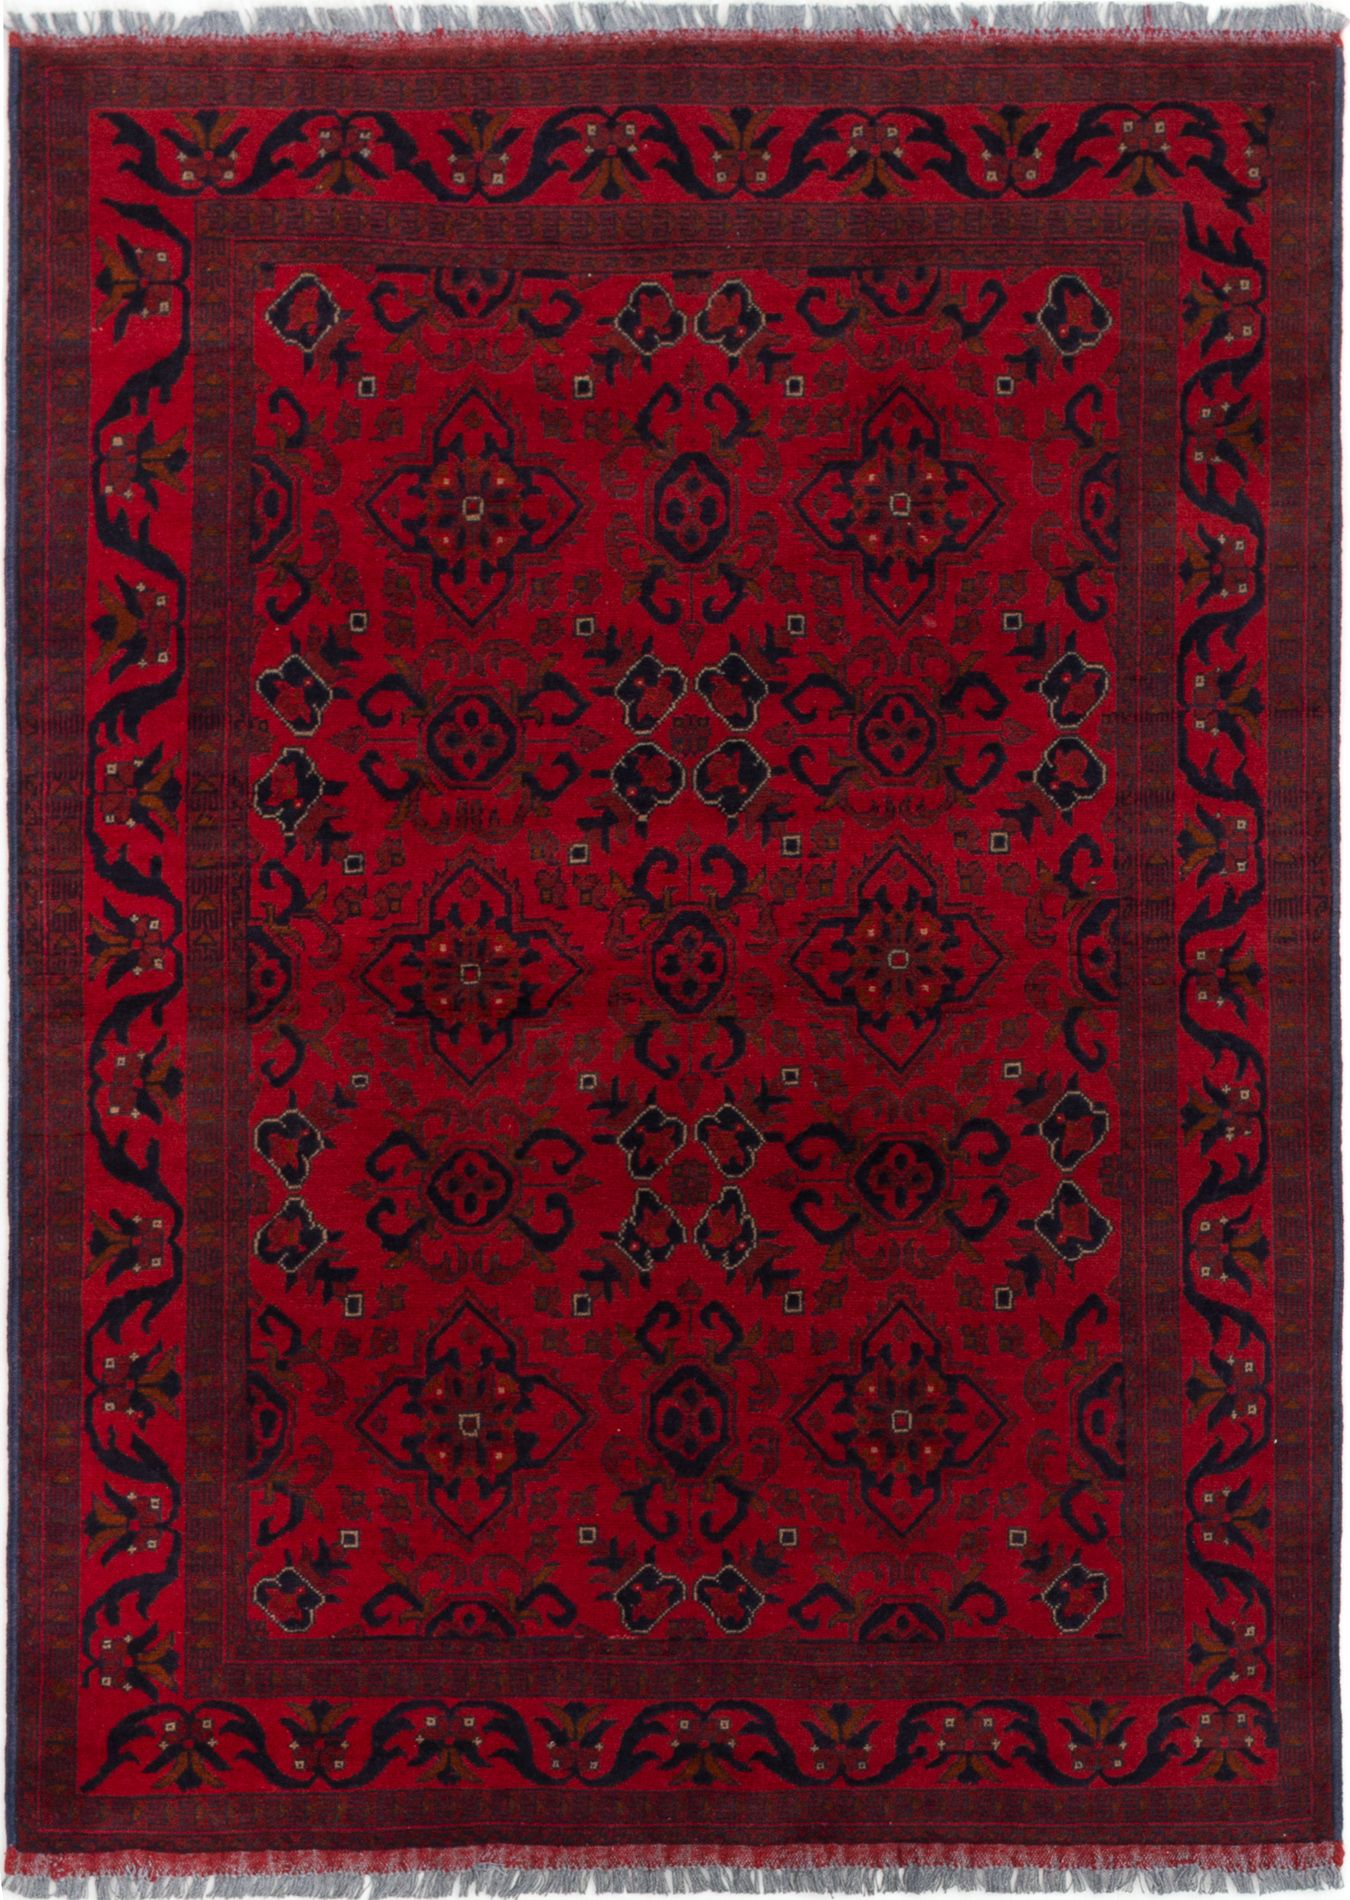 """Hand-knotted Finest Khal Mohammadi Red Wool Rug 4'9"""" x 6'6""""  Size: 4'9"""" x 6'6"""""""